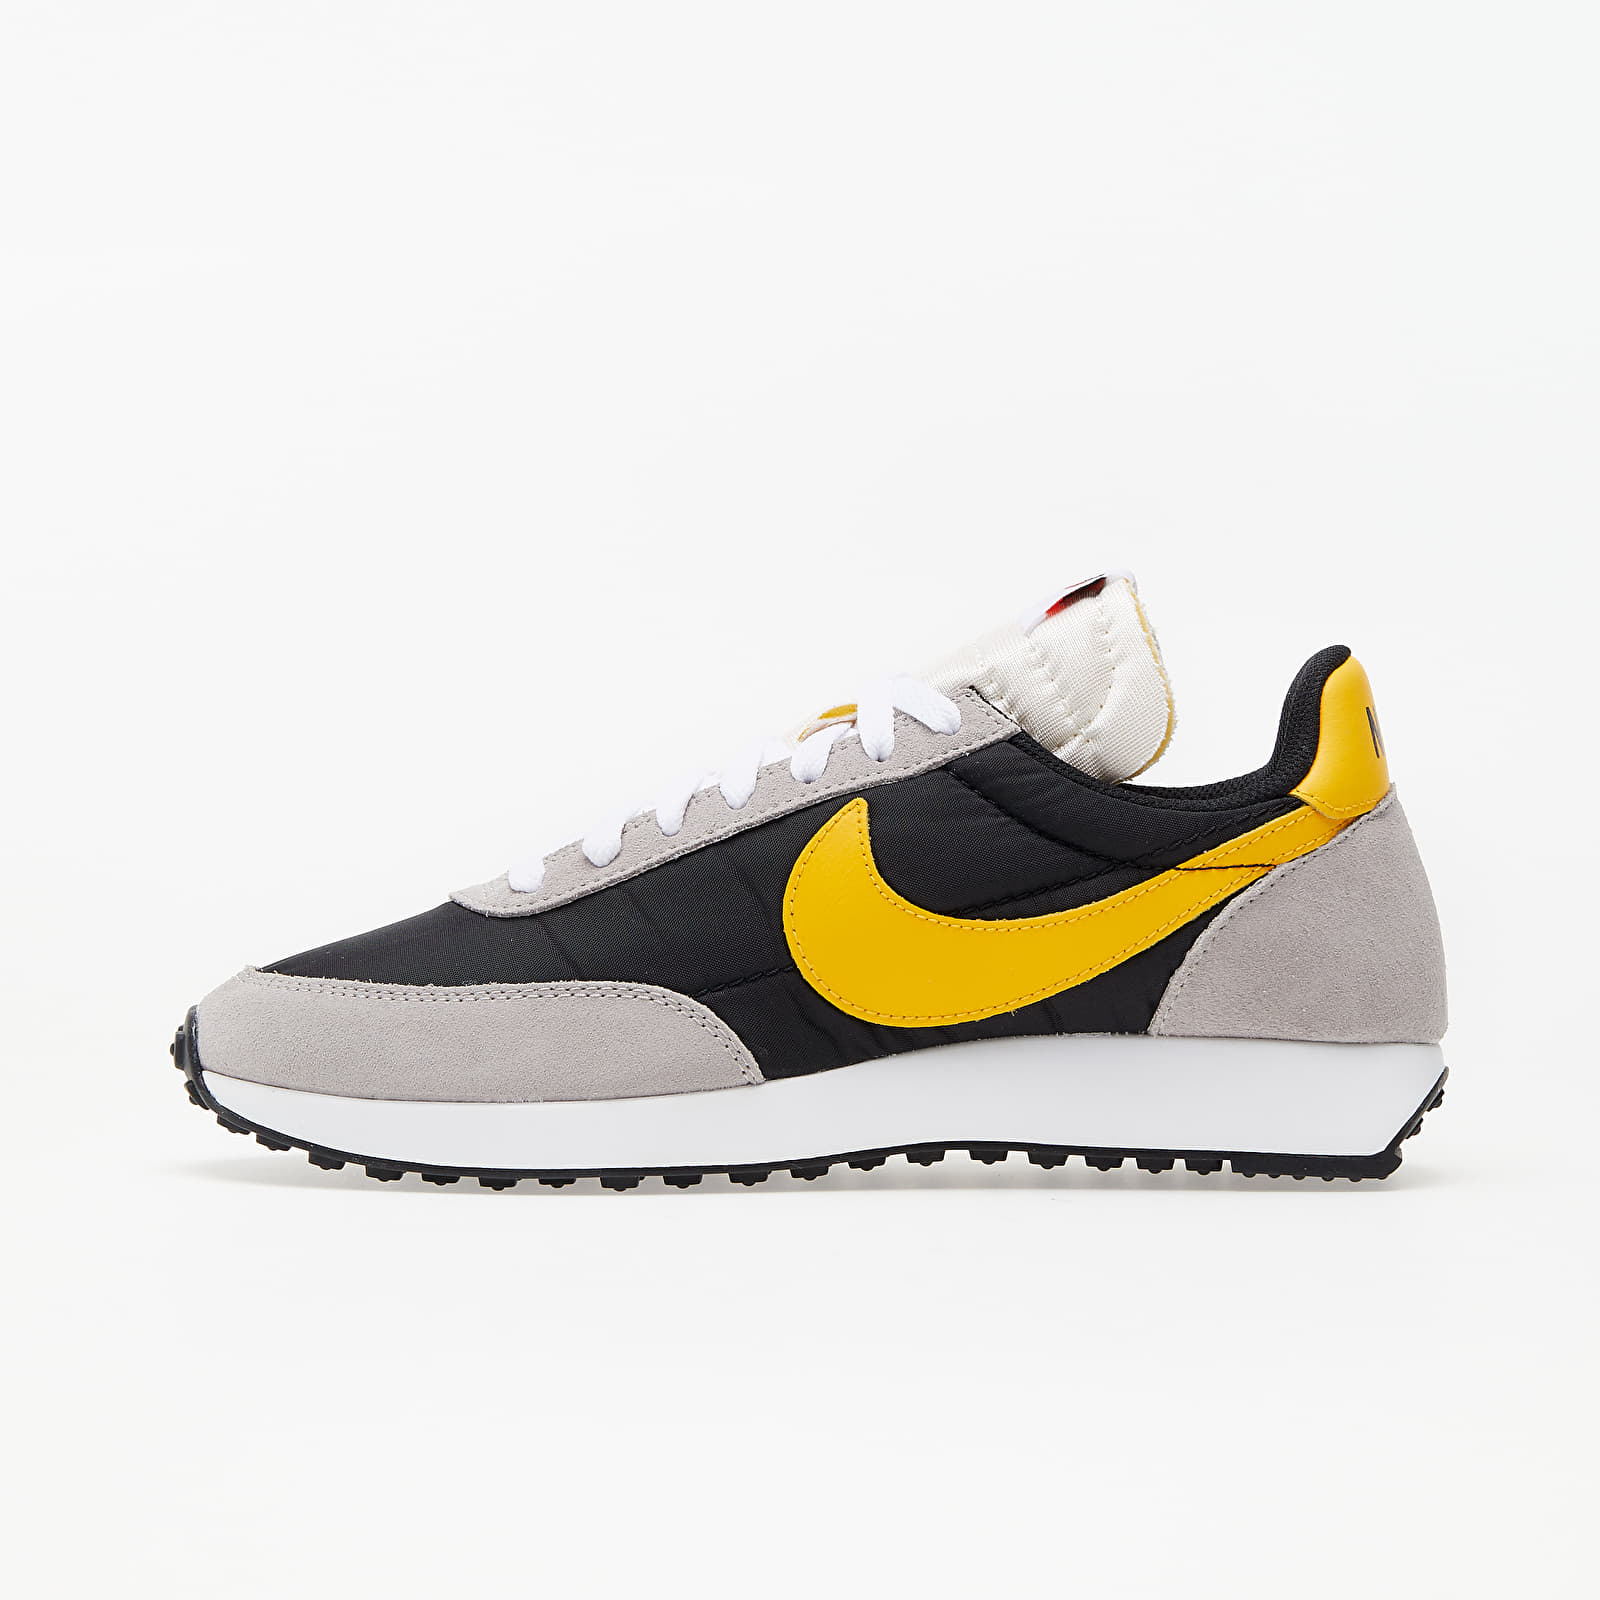 Nike Air Tailwind 79 Black/ University Gold-College Grey-Sail EUR 45.5